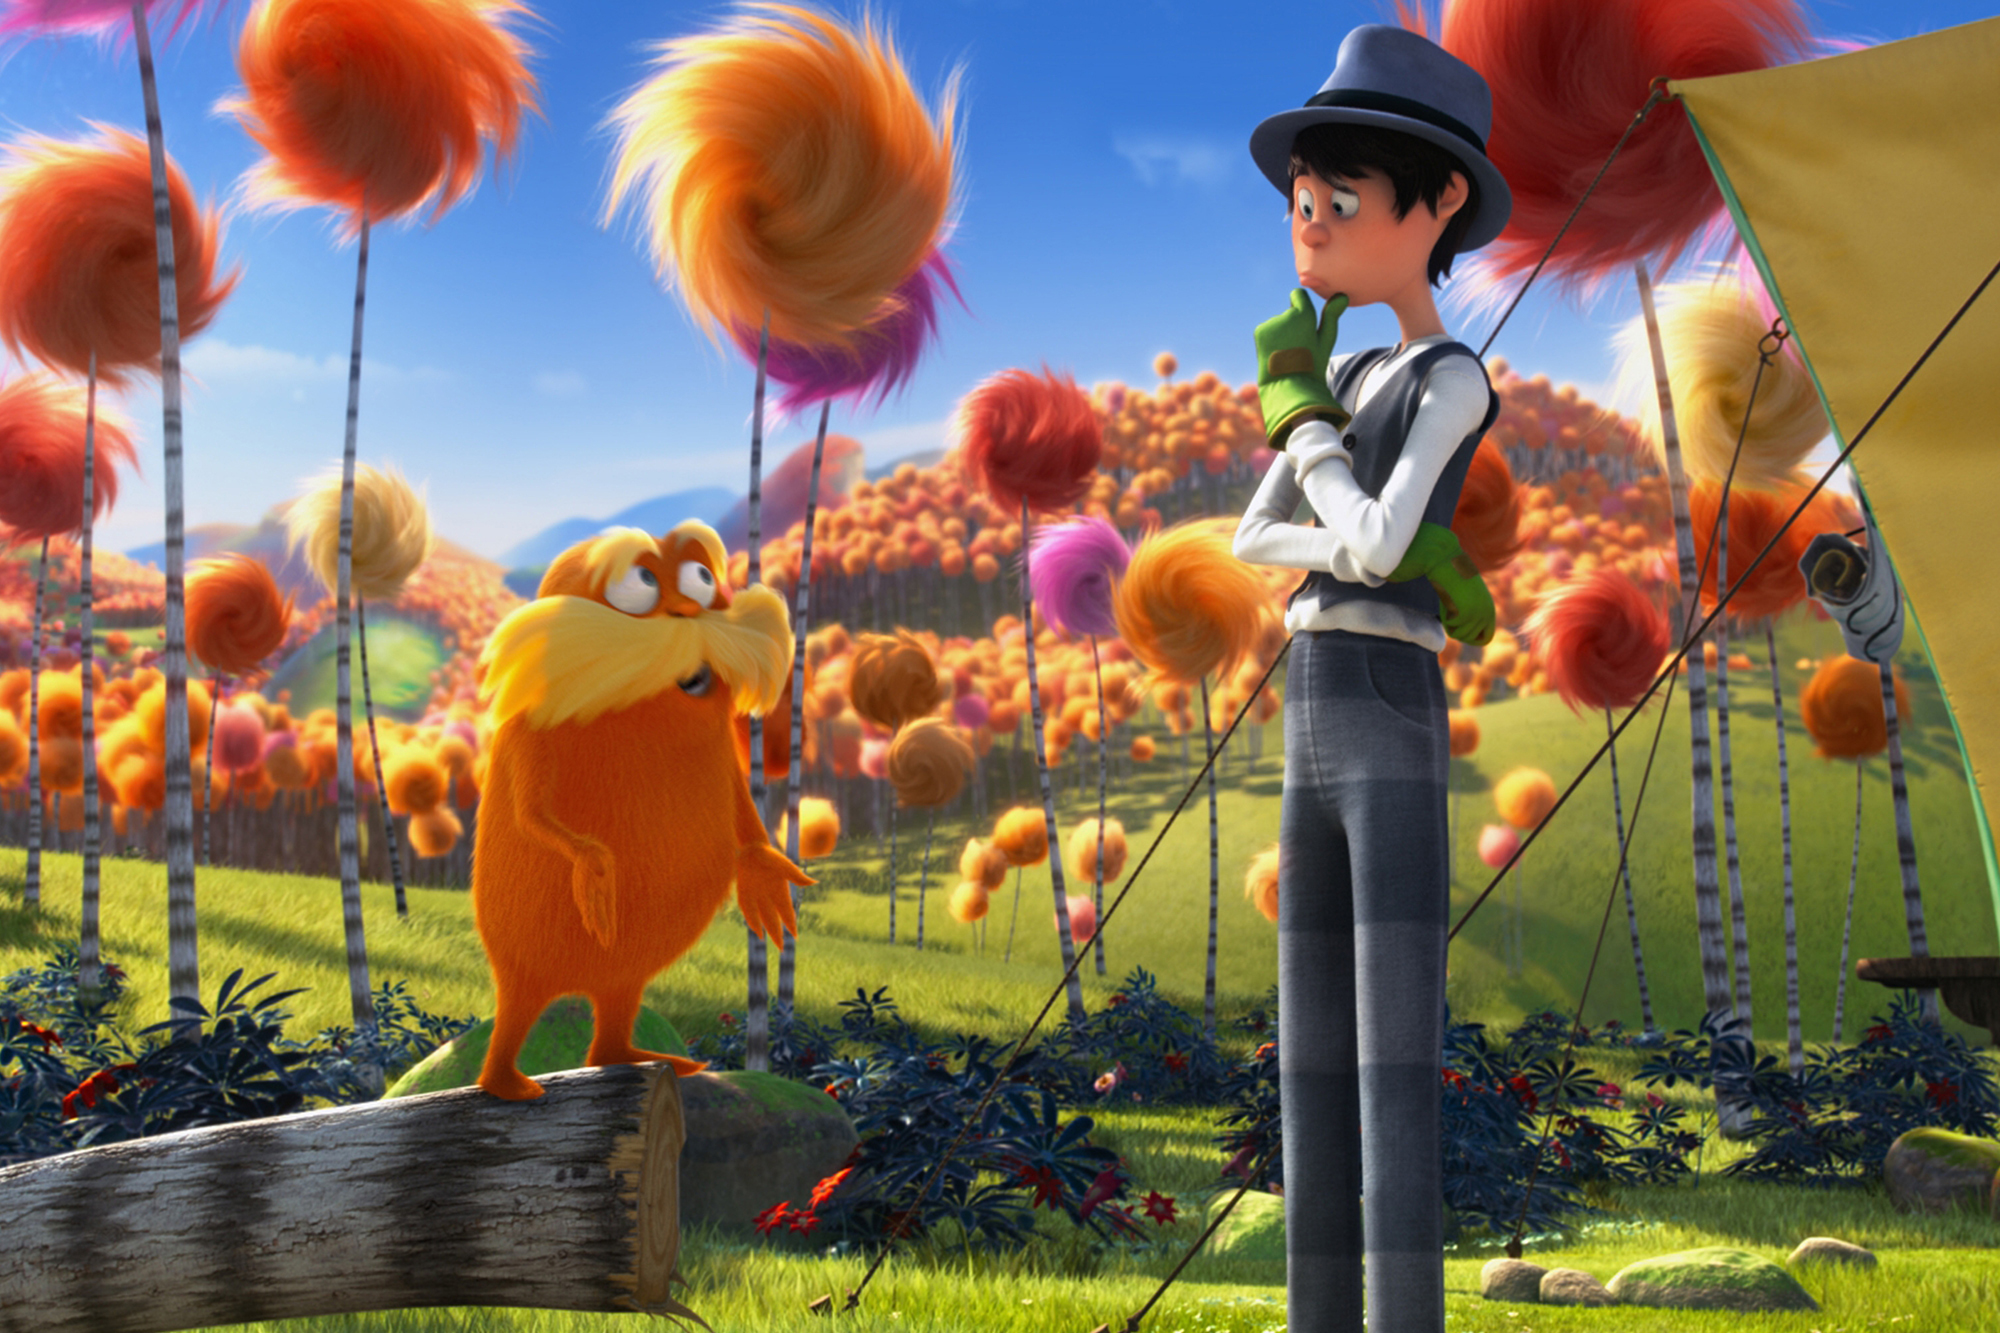 Danny DeVito and Ed Helms in Dr. Seuss's The Lorax